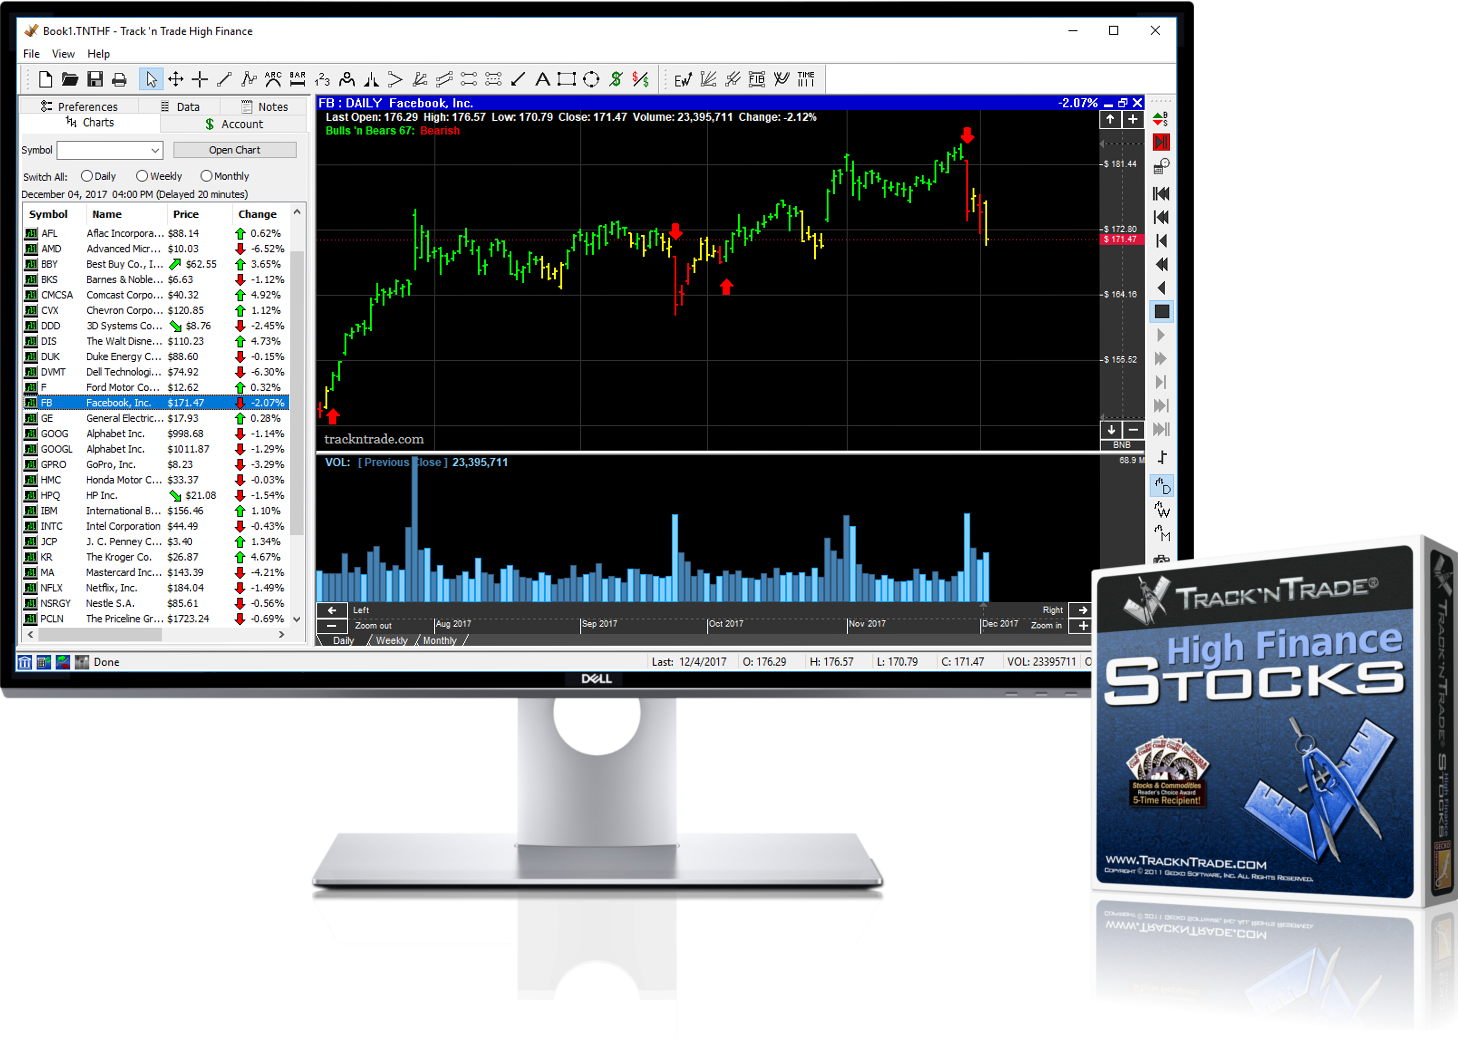 Track 'n Trade Live Forex Trading Platform and Software